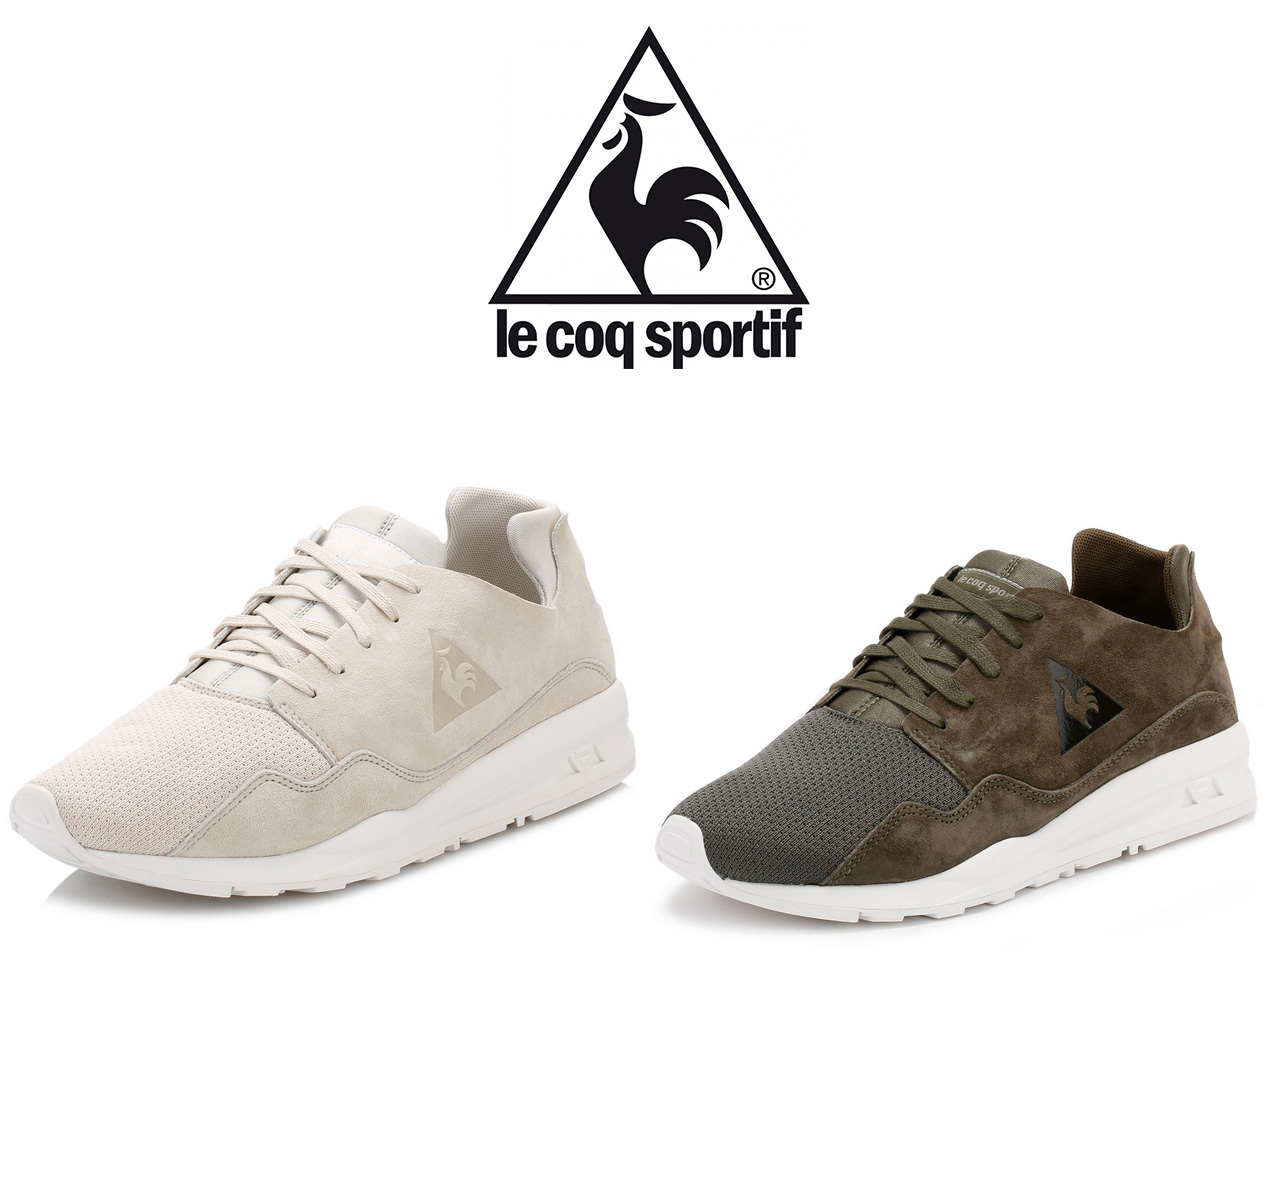 1164966ffb6a Complete with signature Le Coq Sportif branding. Le Coq Sportif goes back  to their roots